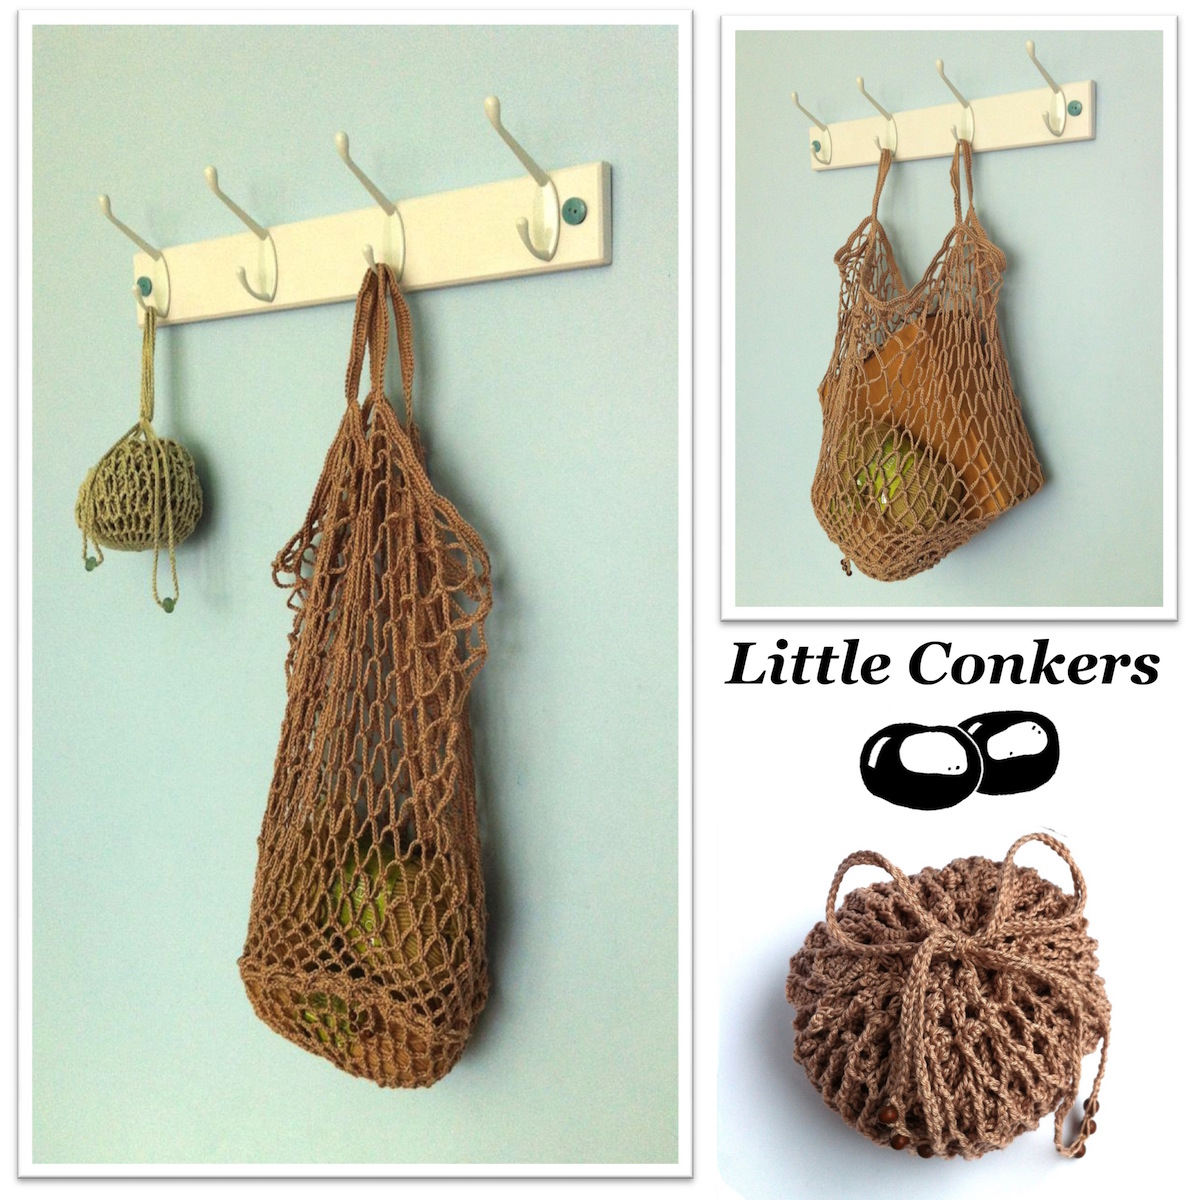 Crocheted Bag made to an original Little Conkers pattern